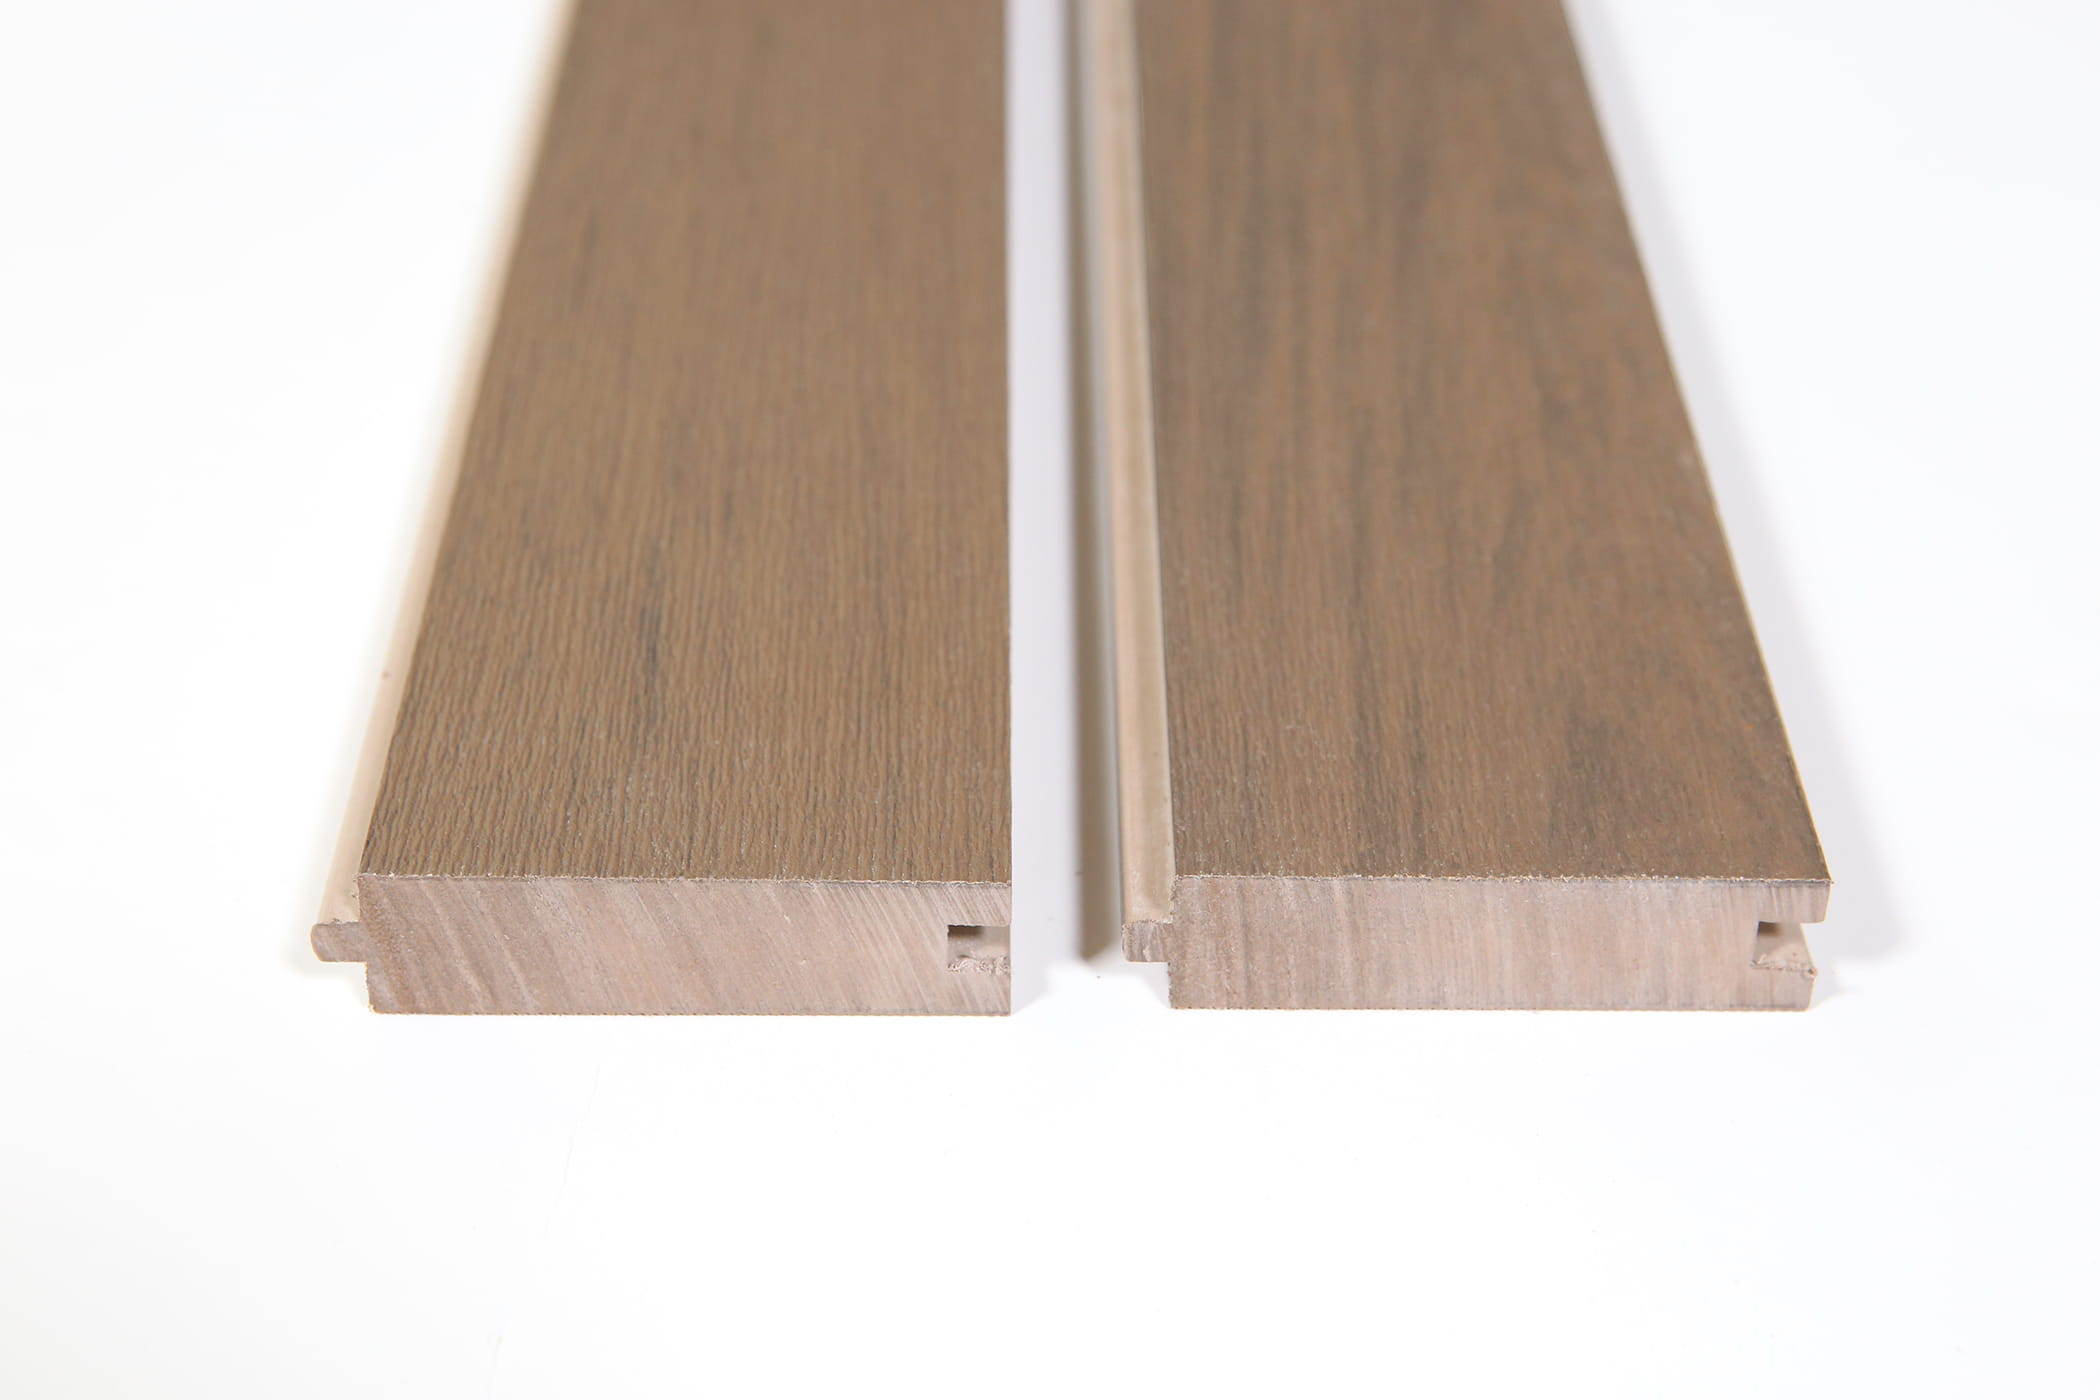 flooring porches floor lowes com pl x supplies in decking ft common aeratis porch building shop at